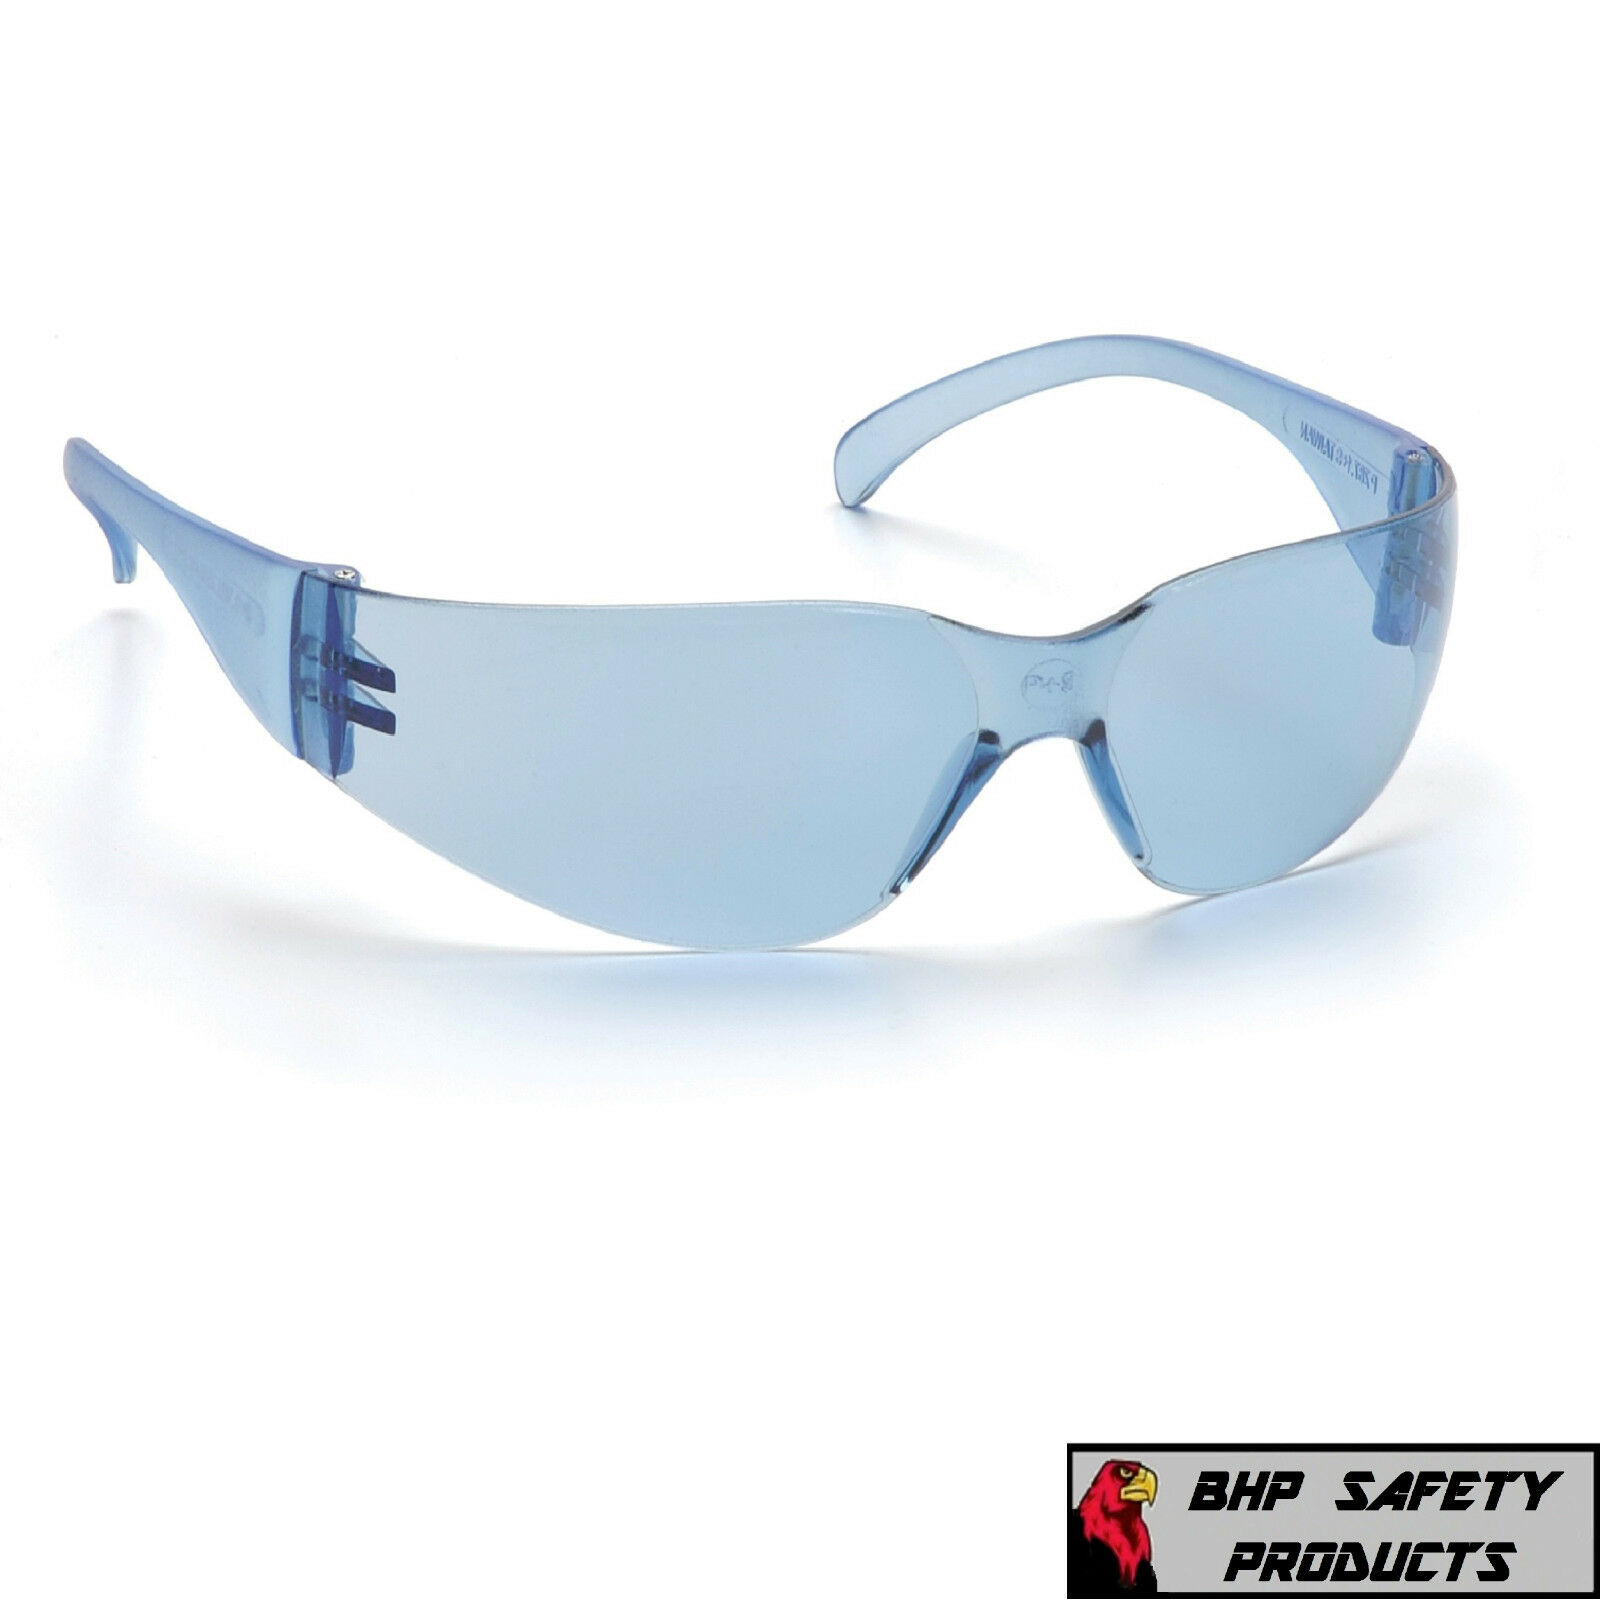 PYRAMEX INTRUDER SAFETY GLASSES ANSI Z87+ WORK EYEWEAR - LIGHTWEIGHT, SUNGLASSES Infinity Blue S4160S